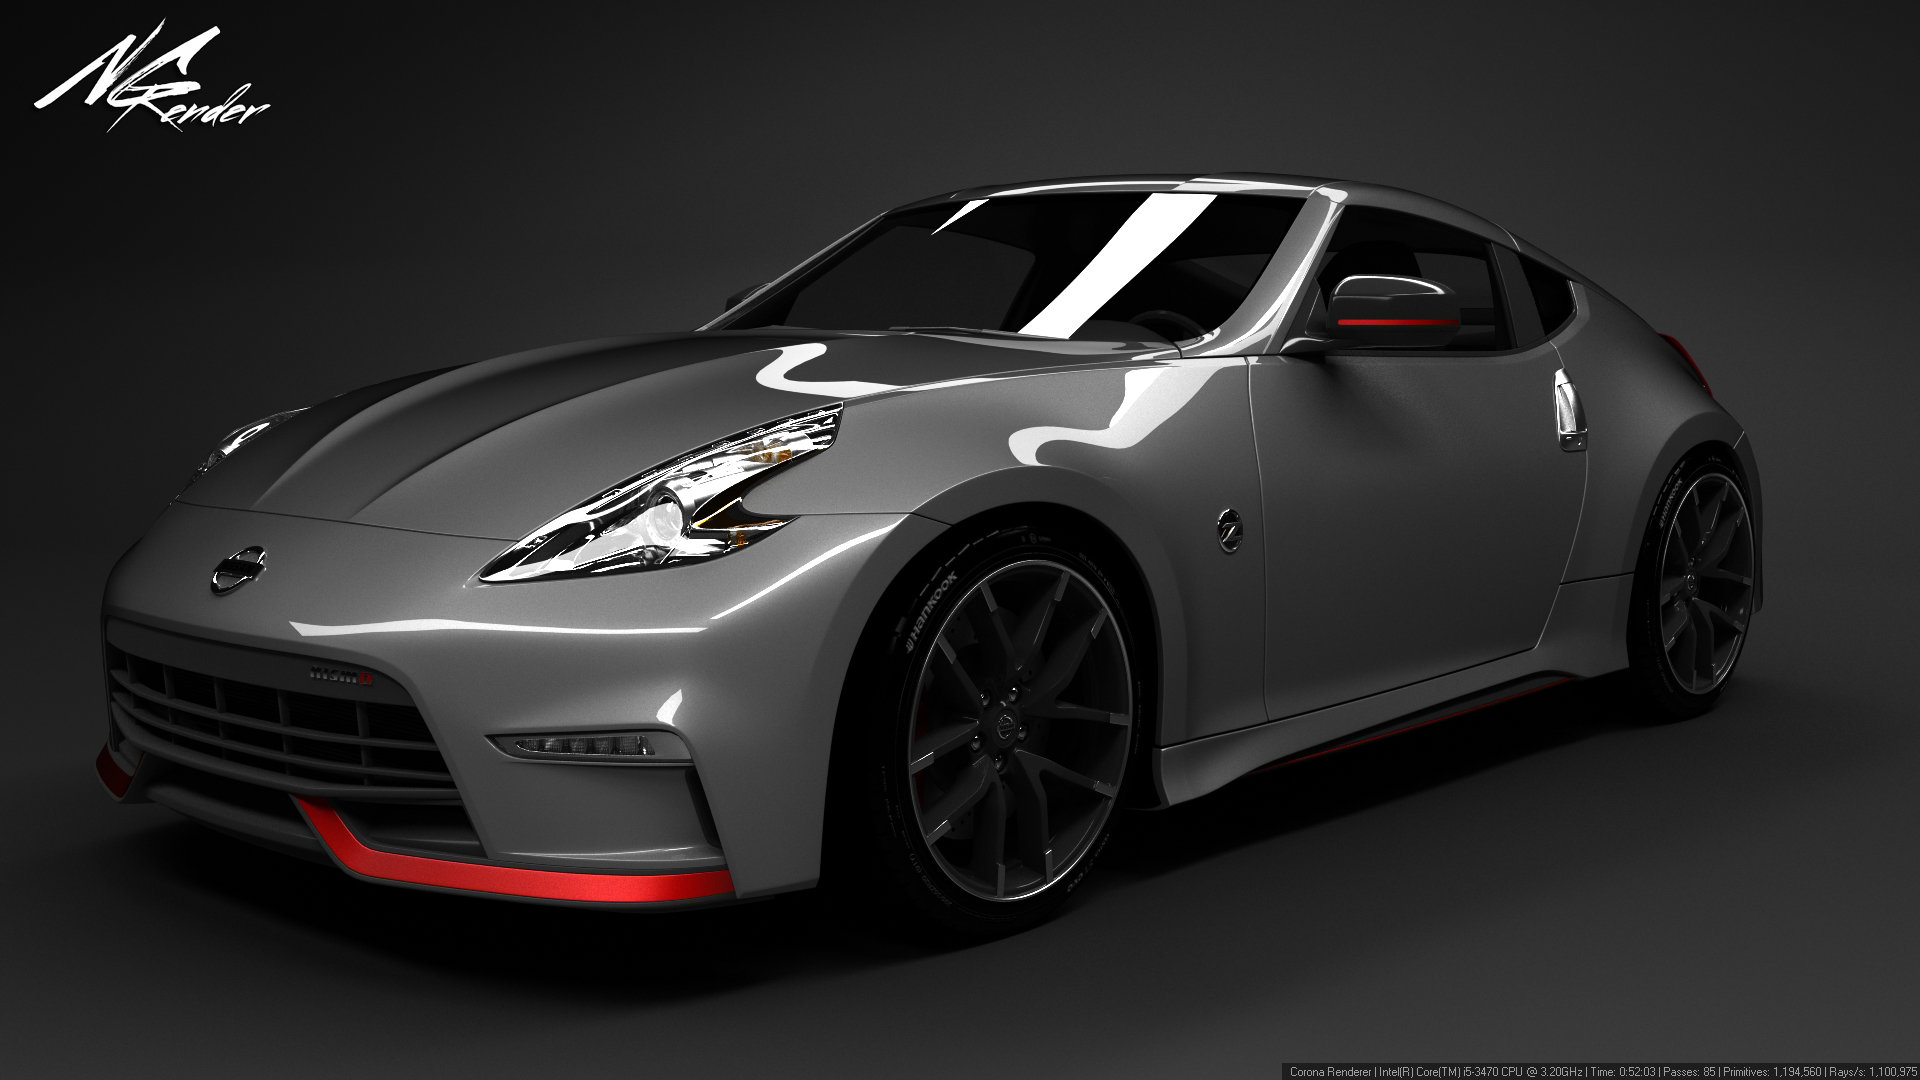 nikita grishechko nissan 370z nismo. Black Bedroom Furniture Sets. Home Design Ideas